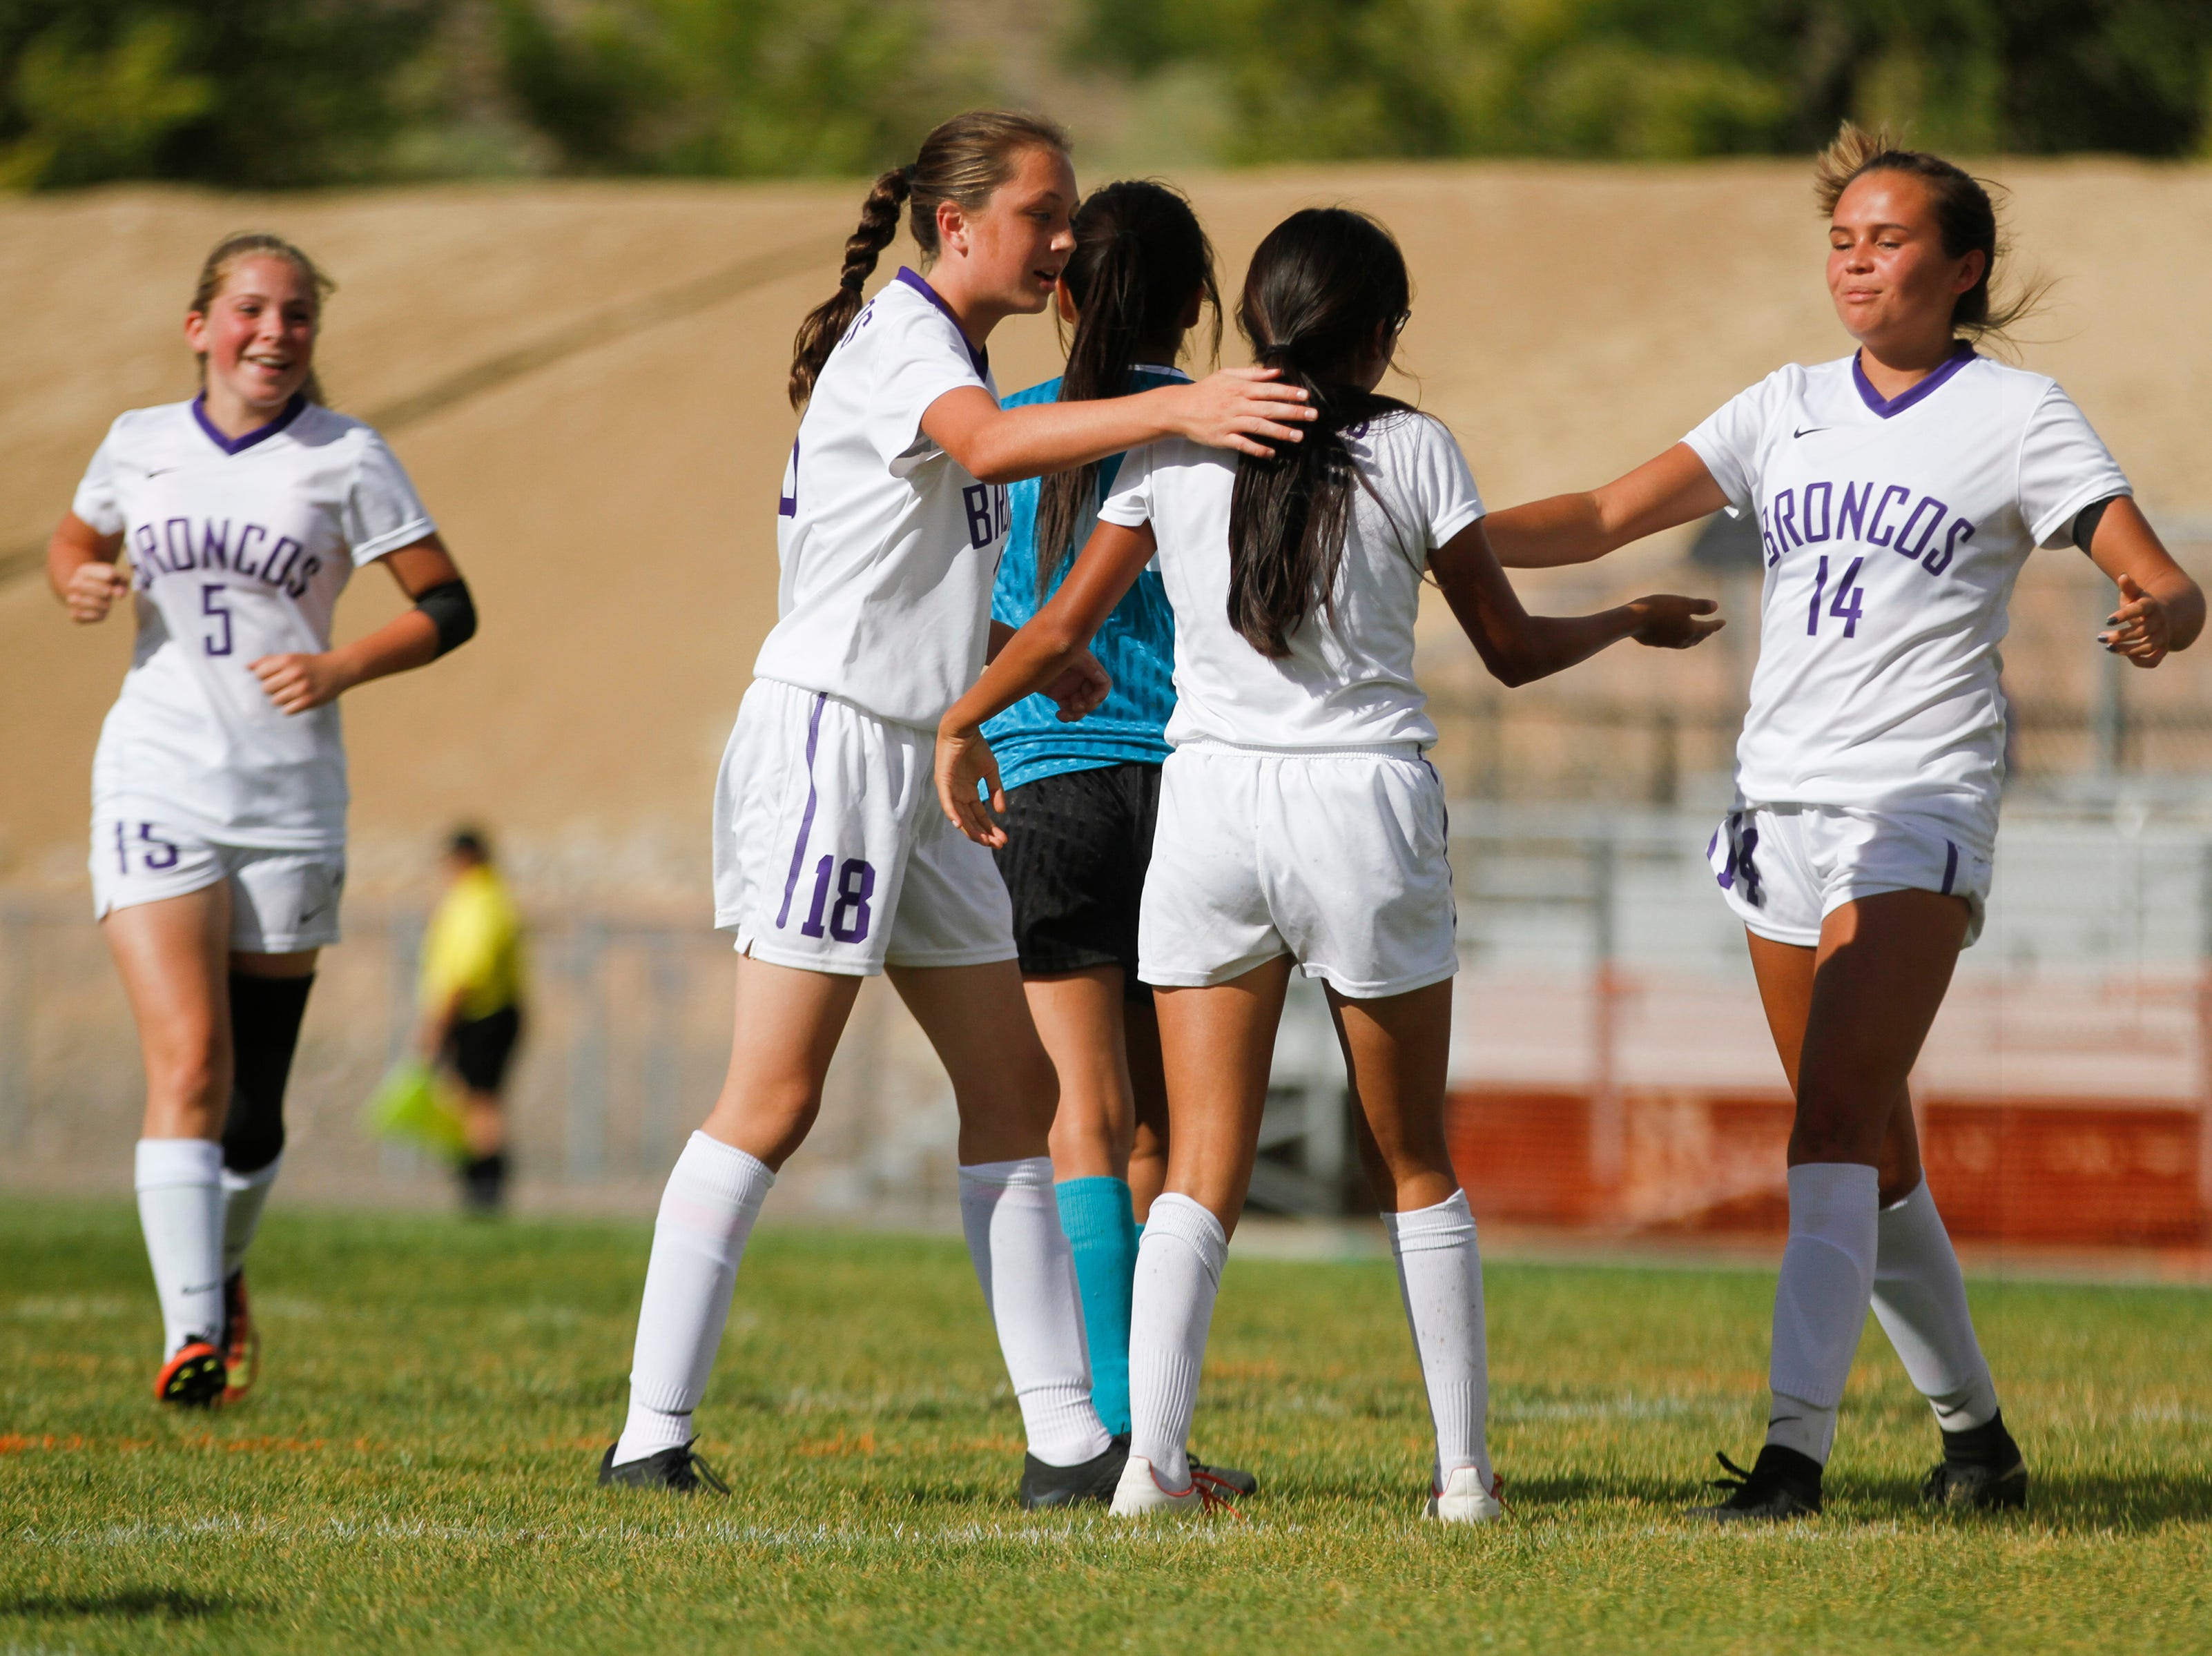 Kirtland Central's Mia Lee, left, Kylie Haws and Hayden Alldredge, right, congratulate teammate Marrissa Henry, second from right, after scoring a goal against Navajo Prep, Thursday, Sept. 6, 2018 at Navajo Prep's Eagle Stadium in Farmington.